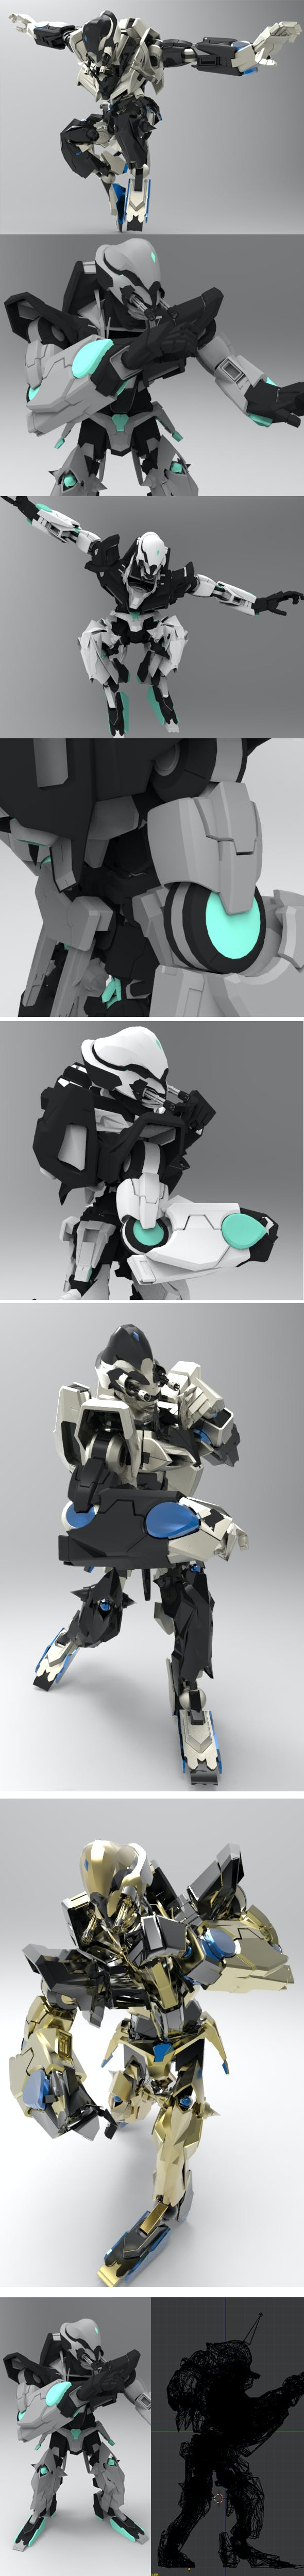 Sci-fi Humanoid Robot 3D model - 3DOcean Item for Sale